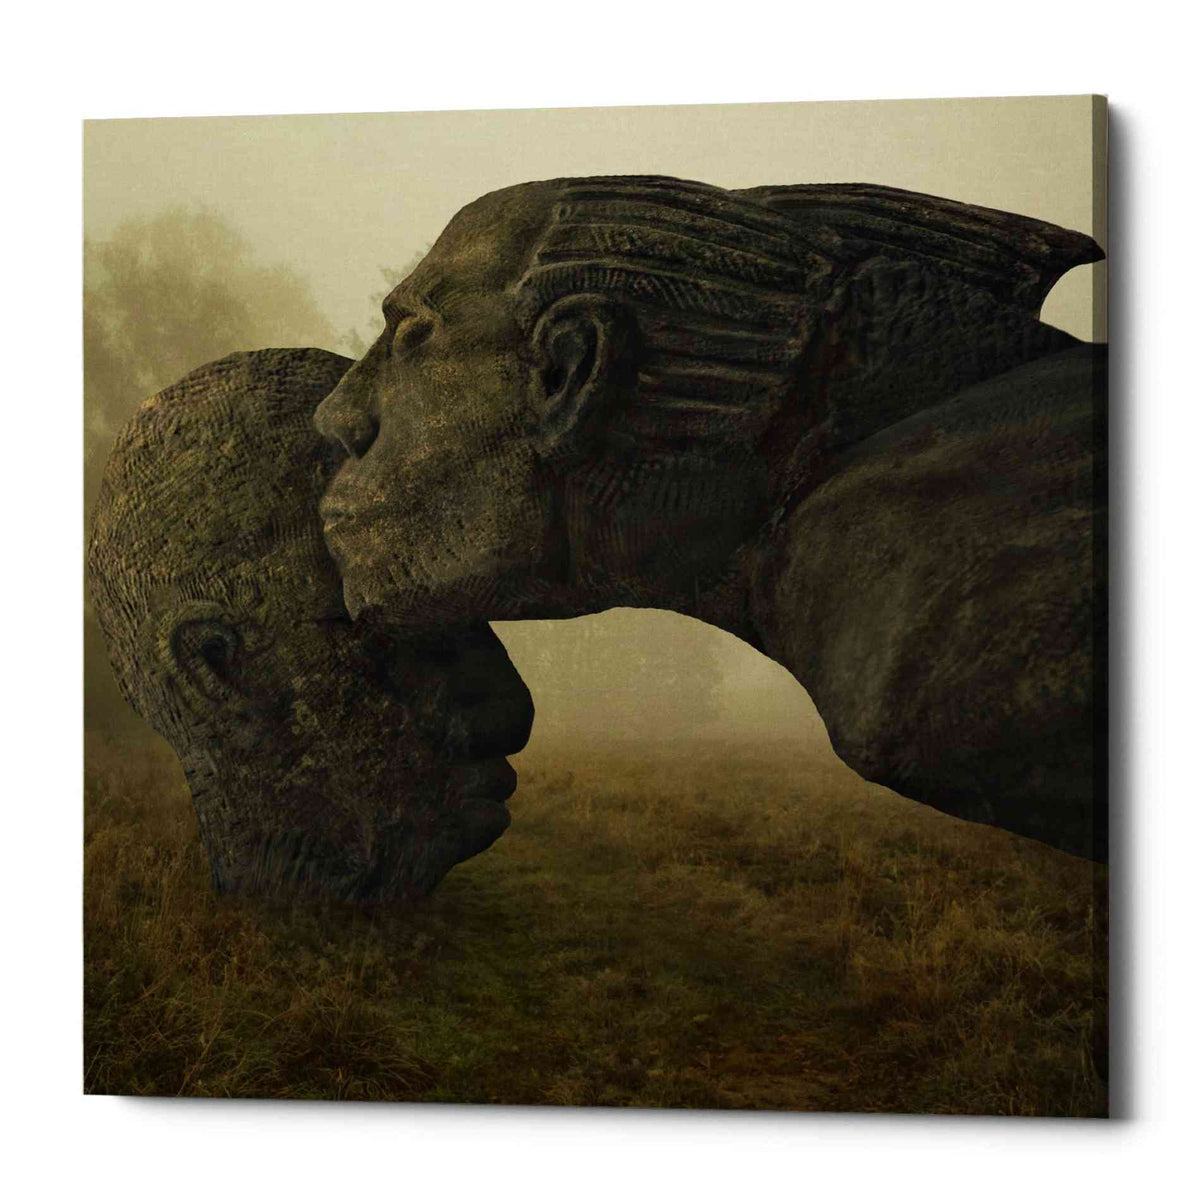 Epic Graffiti 'Mother's Kiss' by Dariusz Klimczak, Canvas Wall Art